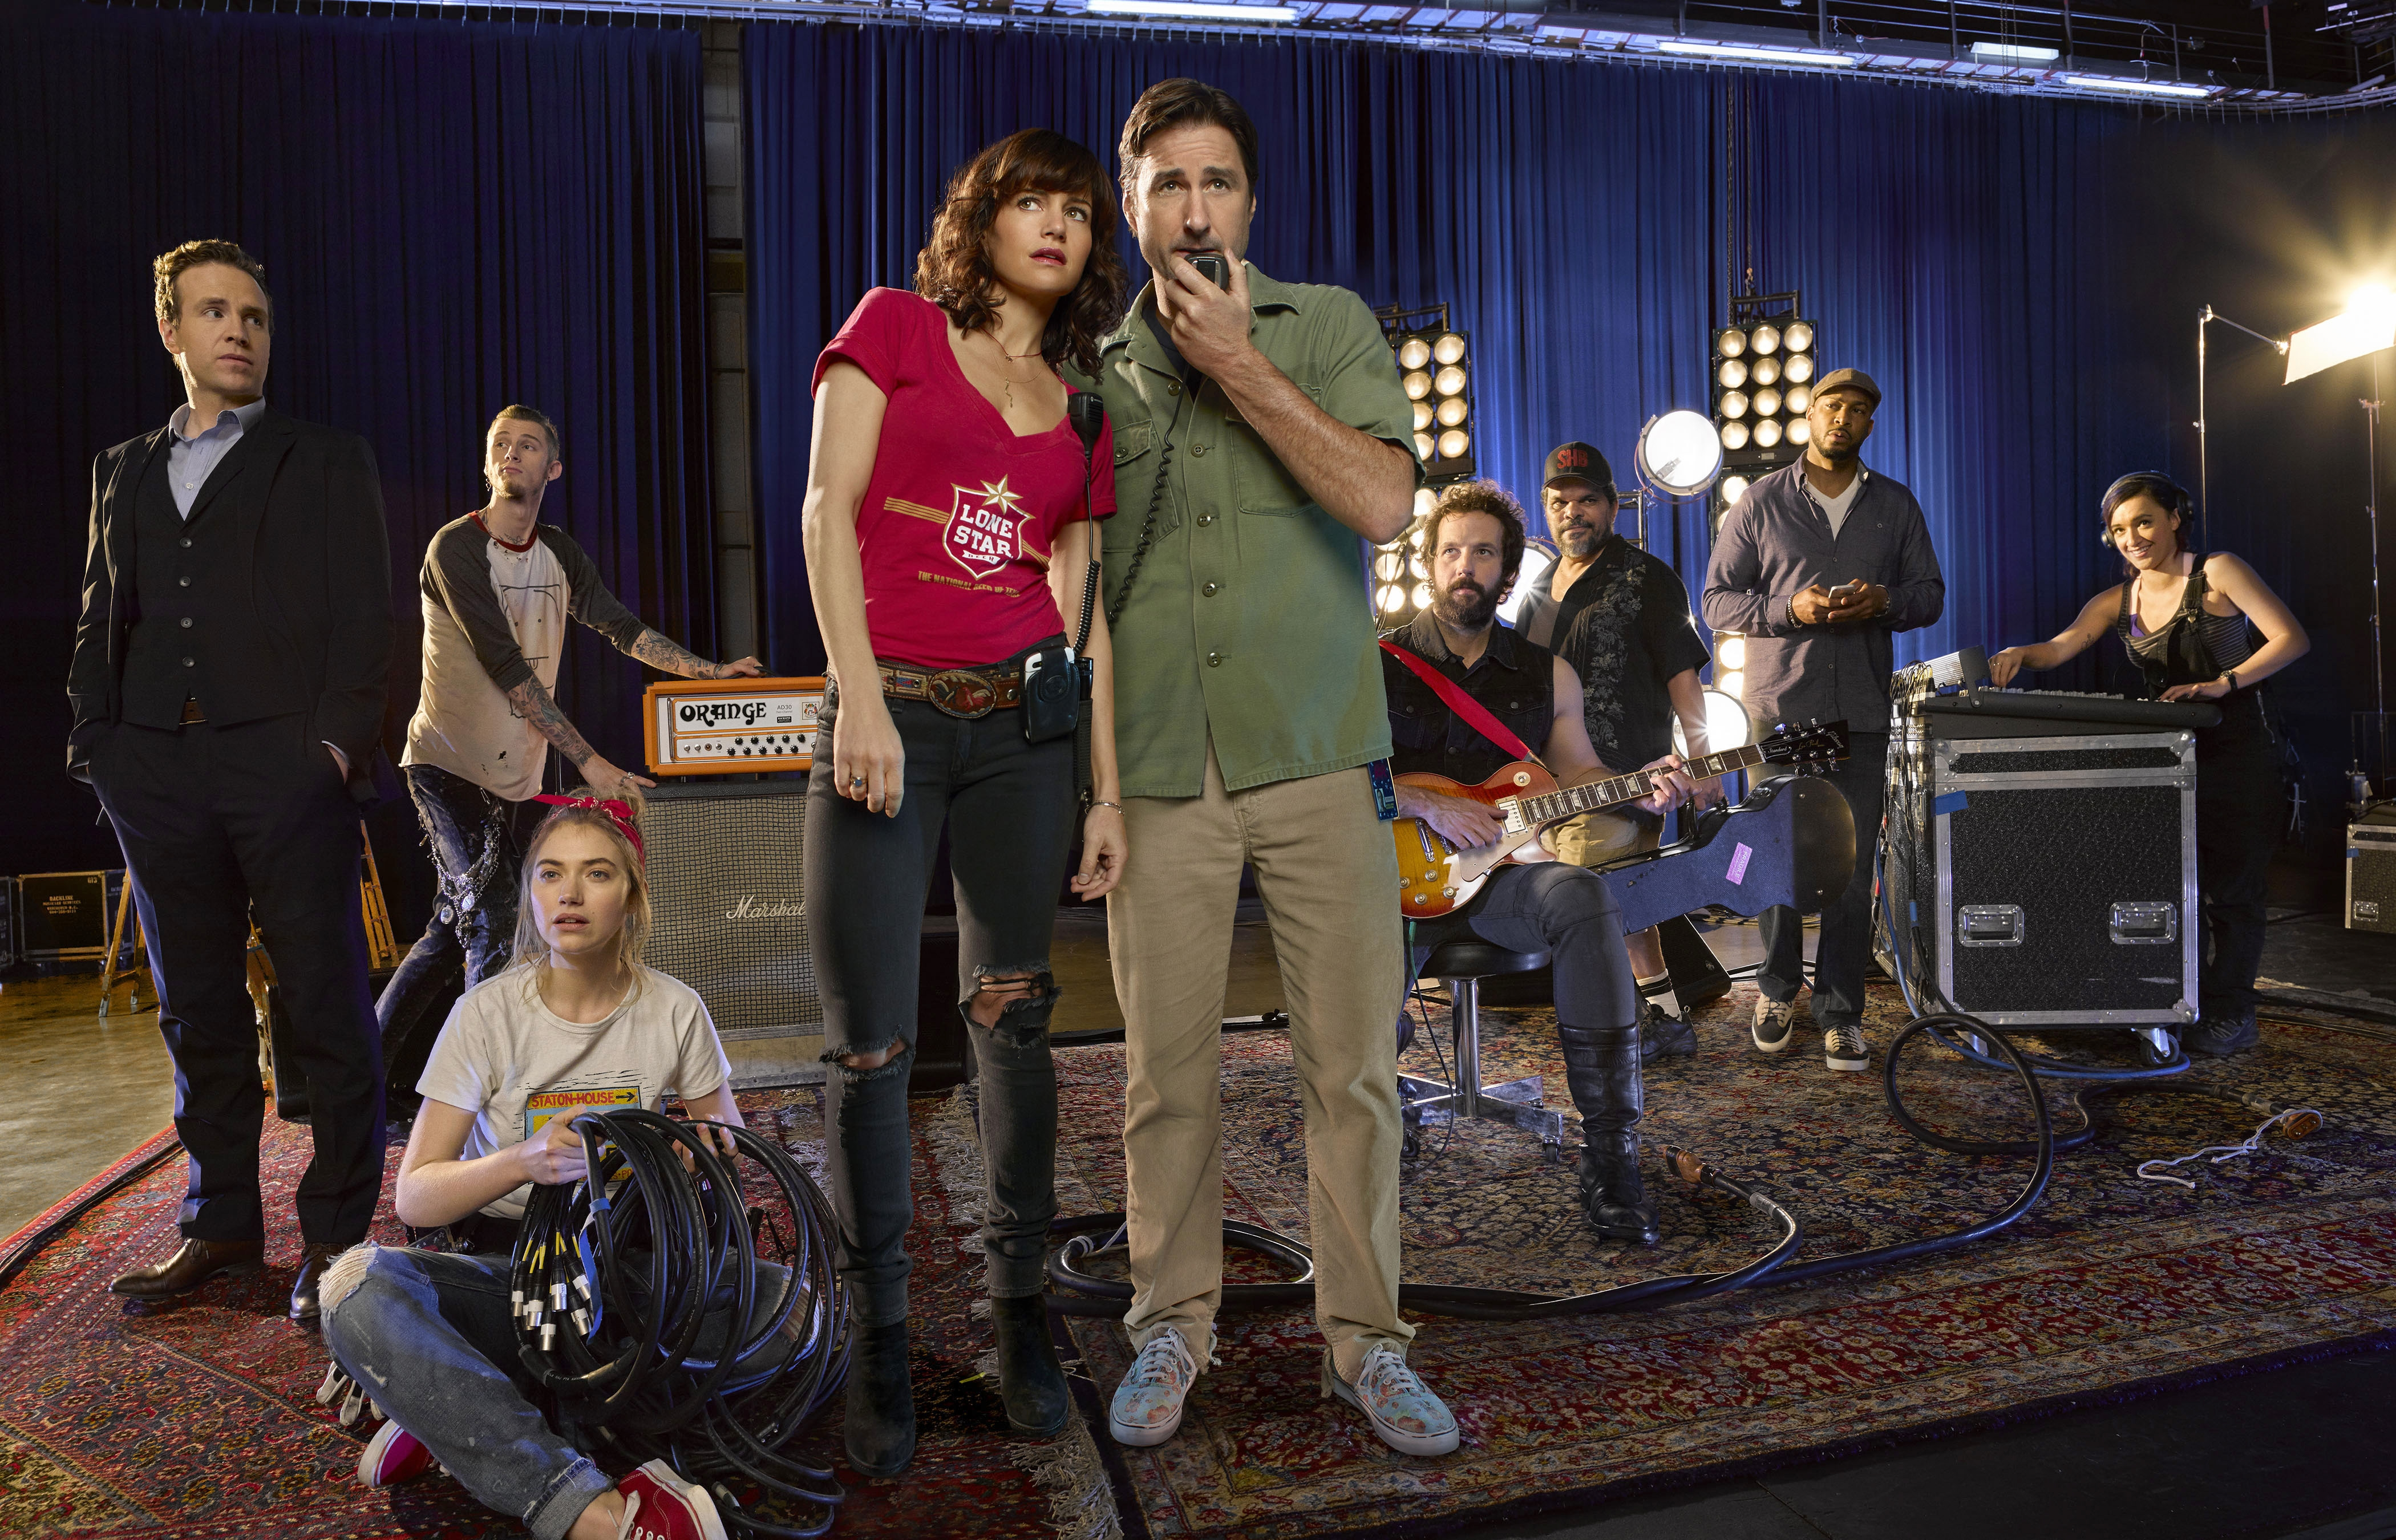 """From left, Rafe Spall, Colson Baker, Imogen Poots, Carla Gugino, Luke Wilson, Peter Cambor, Luis Guzmán, Finesse Mitchell and Keisha Castle-Hughes in """"Roadies."""""""